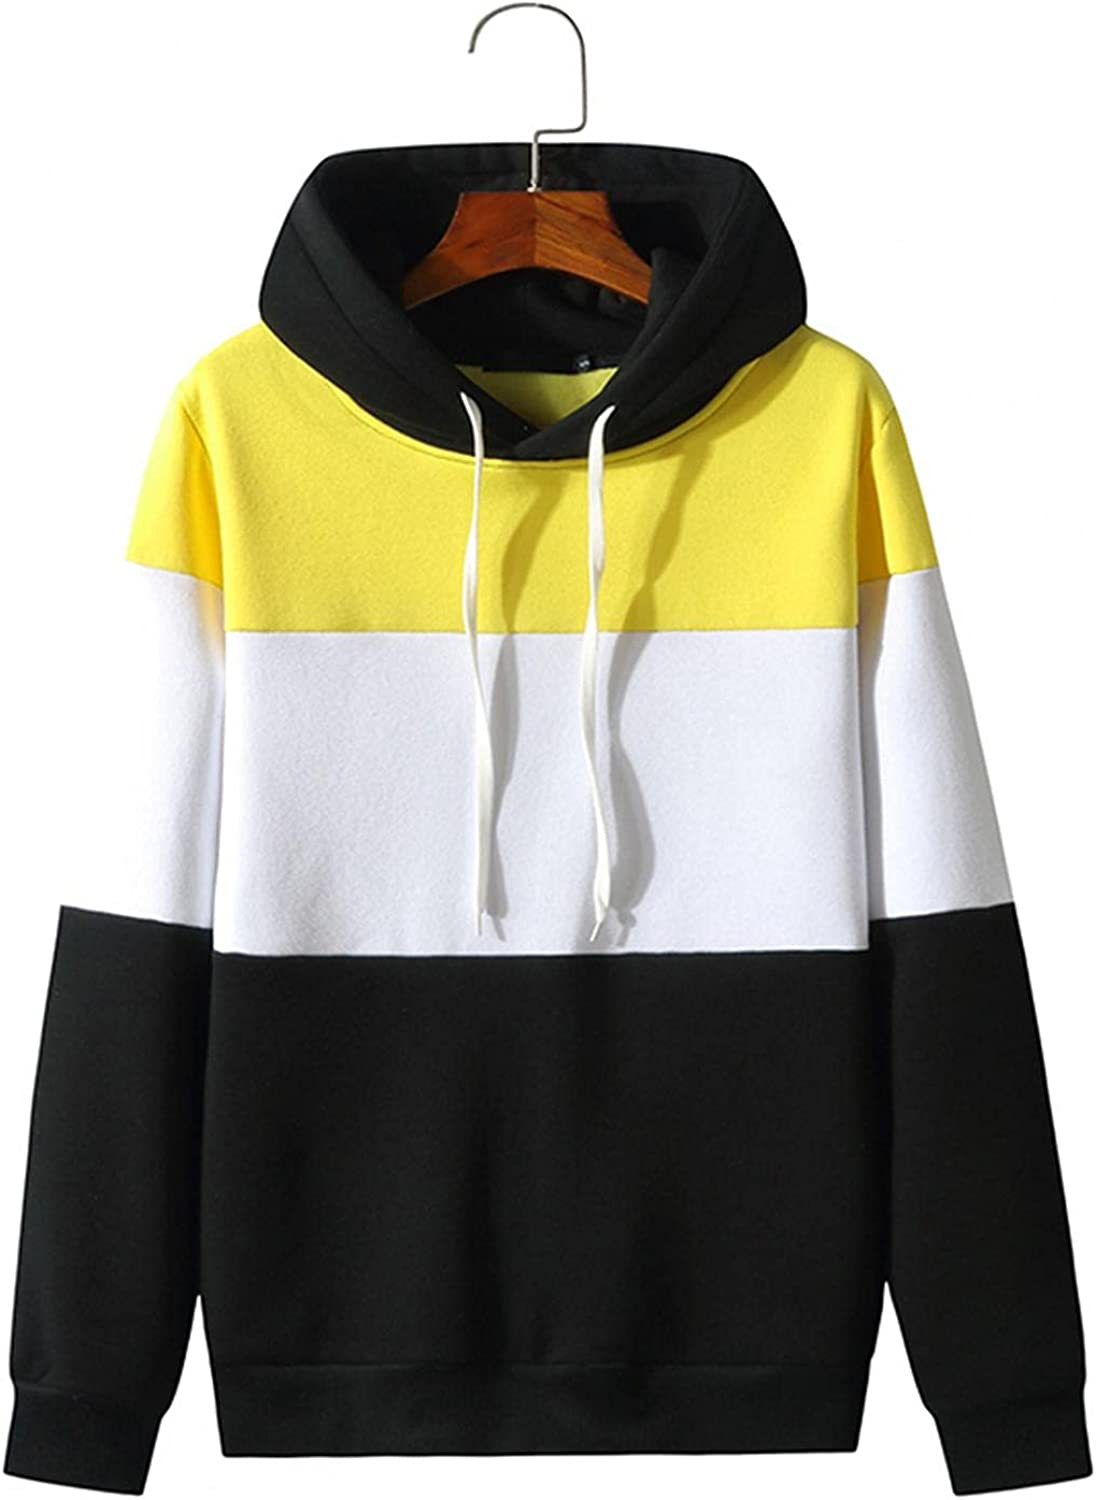 WoCoo Mens Hooded Top Blouse Long Sleeve Patchwork Pullover Sweatshirts Casual Contrast Color Drawstring Shirt Tops